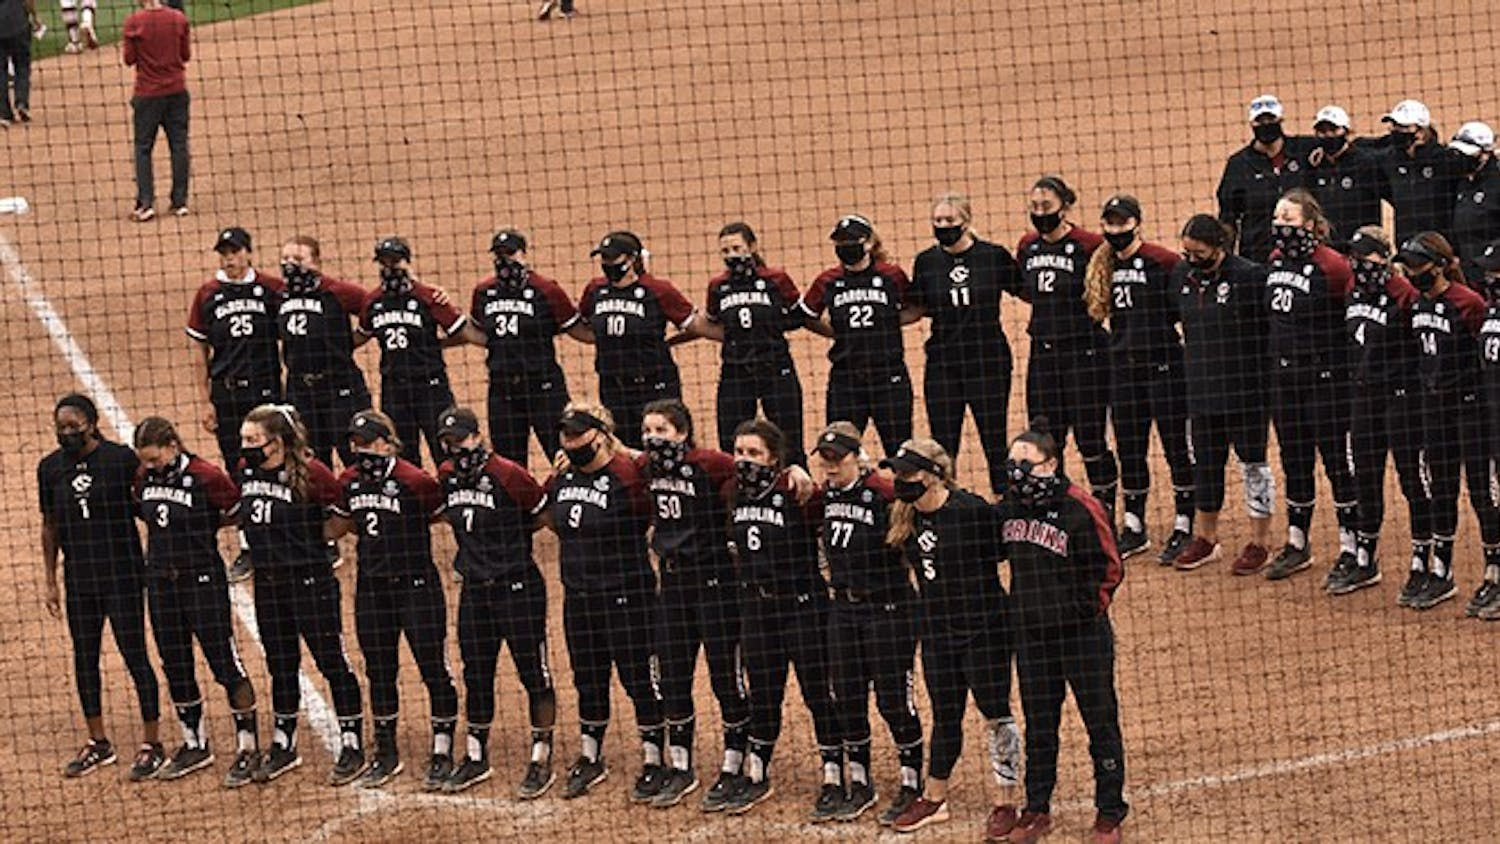 The South Carolina softball team stands together after its loss to Arkansas on March 13, 2021.